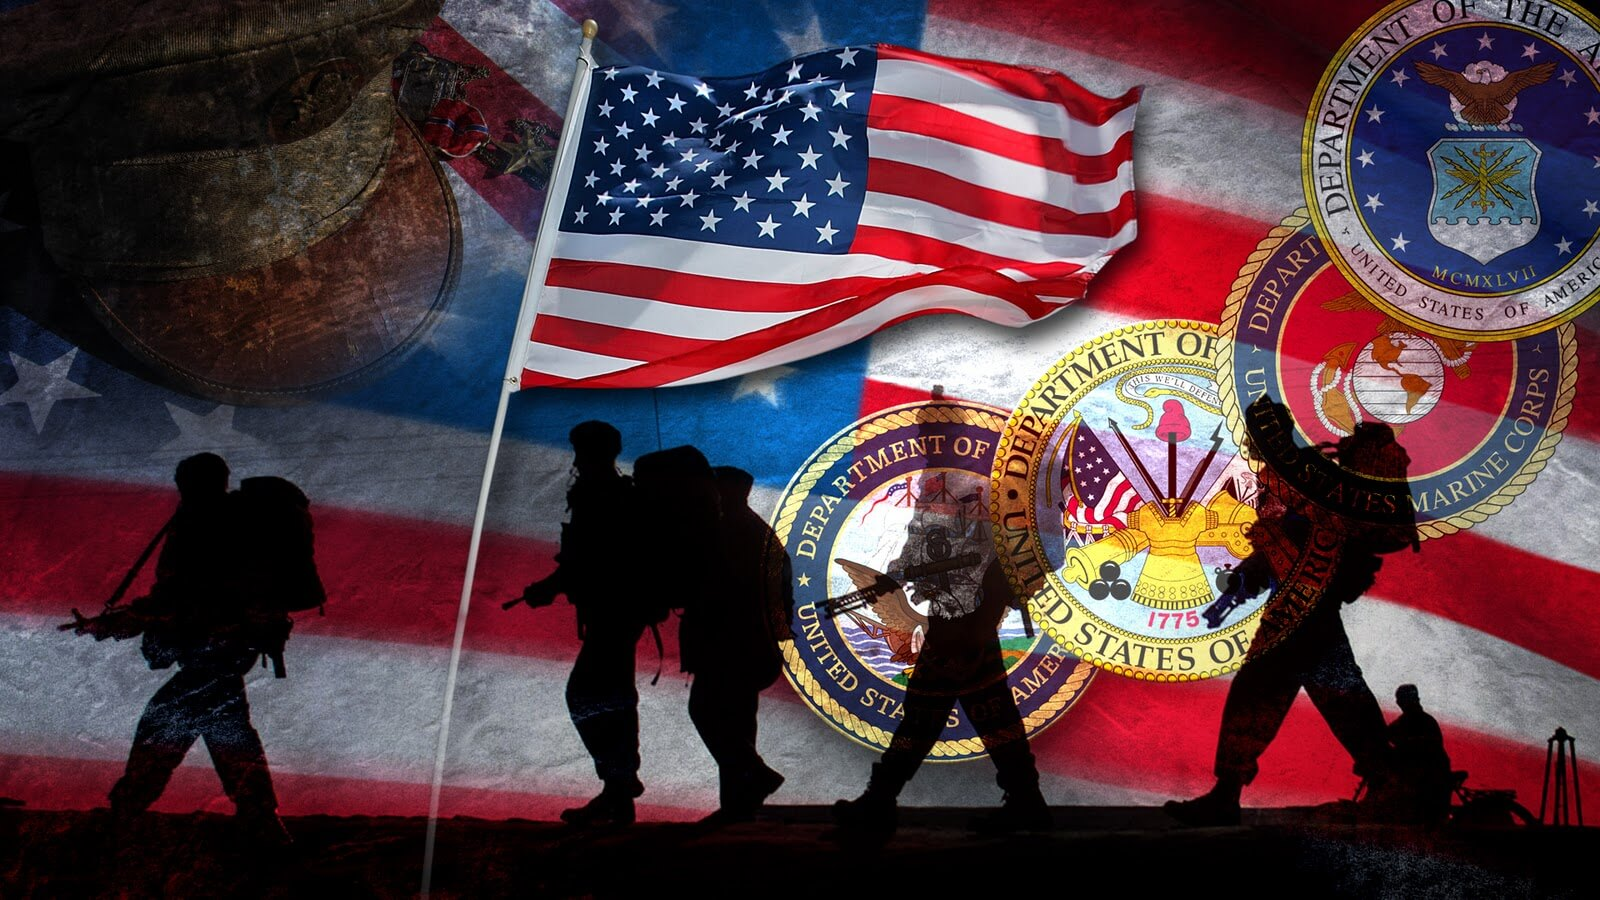 No matter what branch of the military, honor all who serve